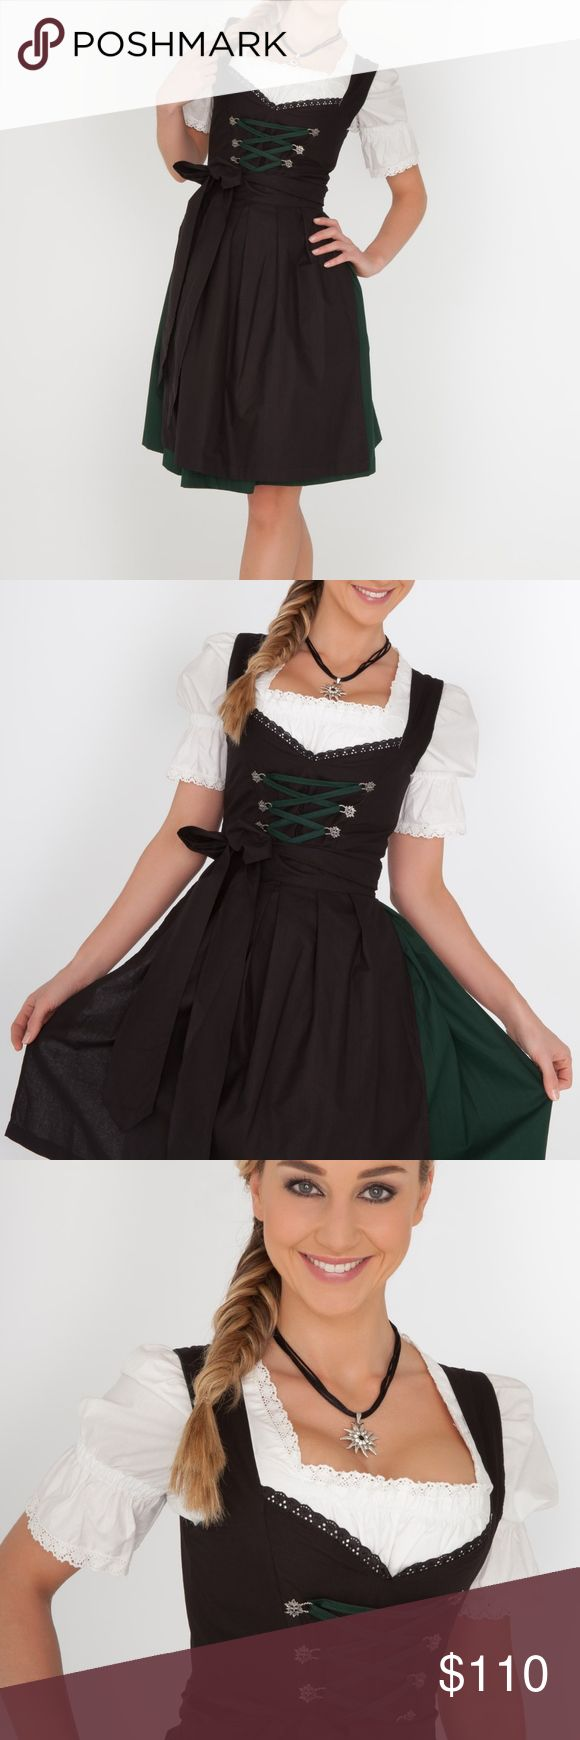 Authentic German Oktoberfest Dirndl Authentic and traditional Dirndl ordered from Germany; size 32; NWT. Great for Oktoberfest parties or Halloween!!!  Ordered the incorrect size. Beautiful colors - green and black. Bodice features silver edelweiss flowers - often seen on Oktoberfest attire, through which dark green contrast lacing is threaded. The blouse included has the perfect touch of lace. Dresses Midi